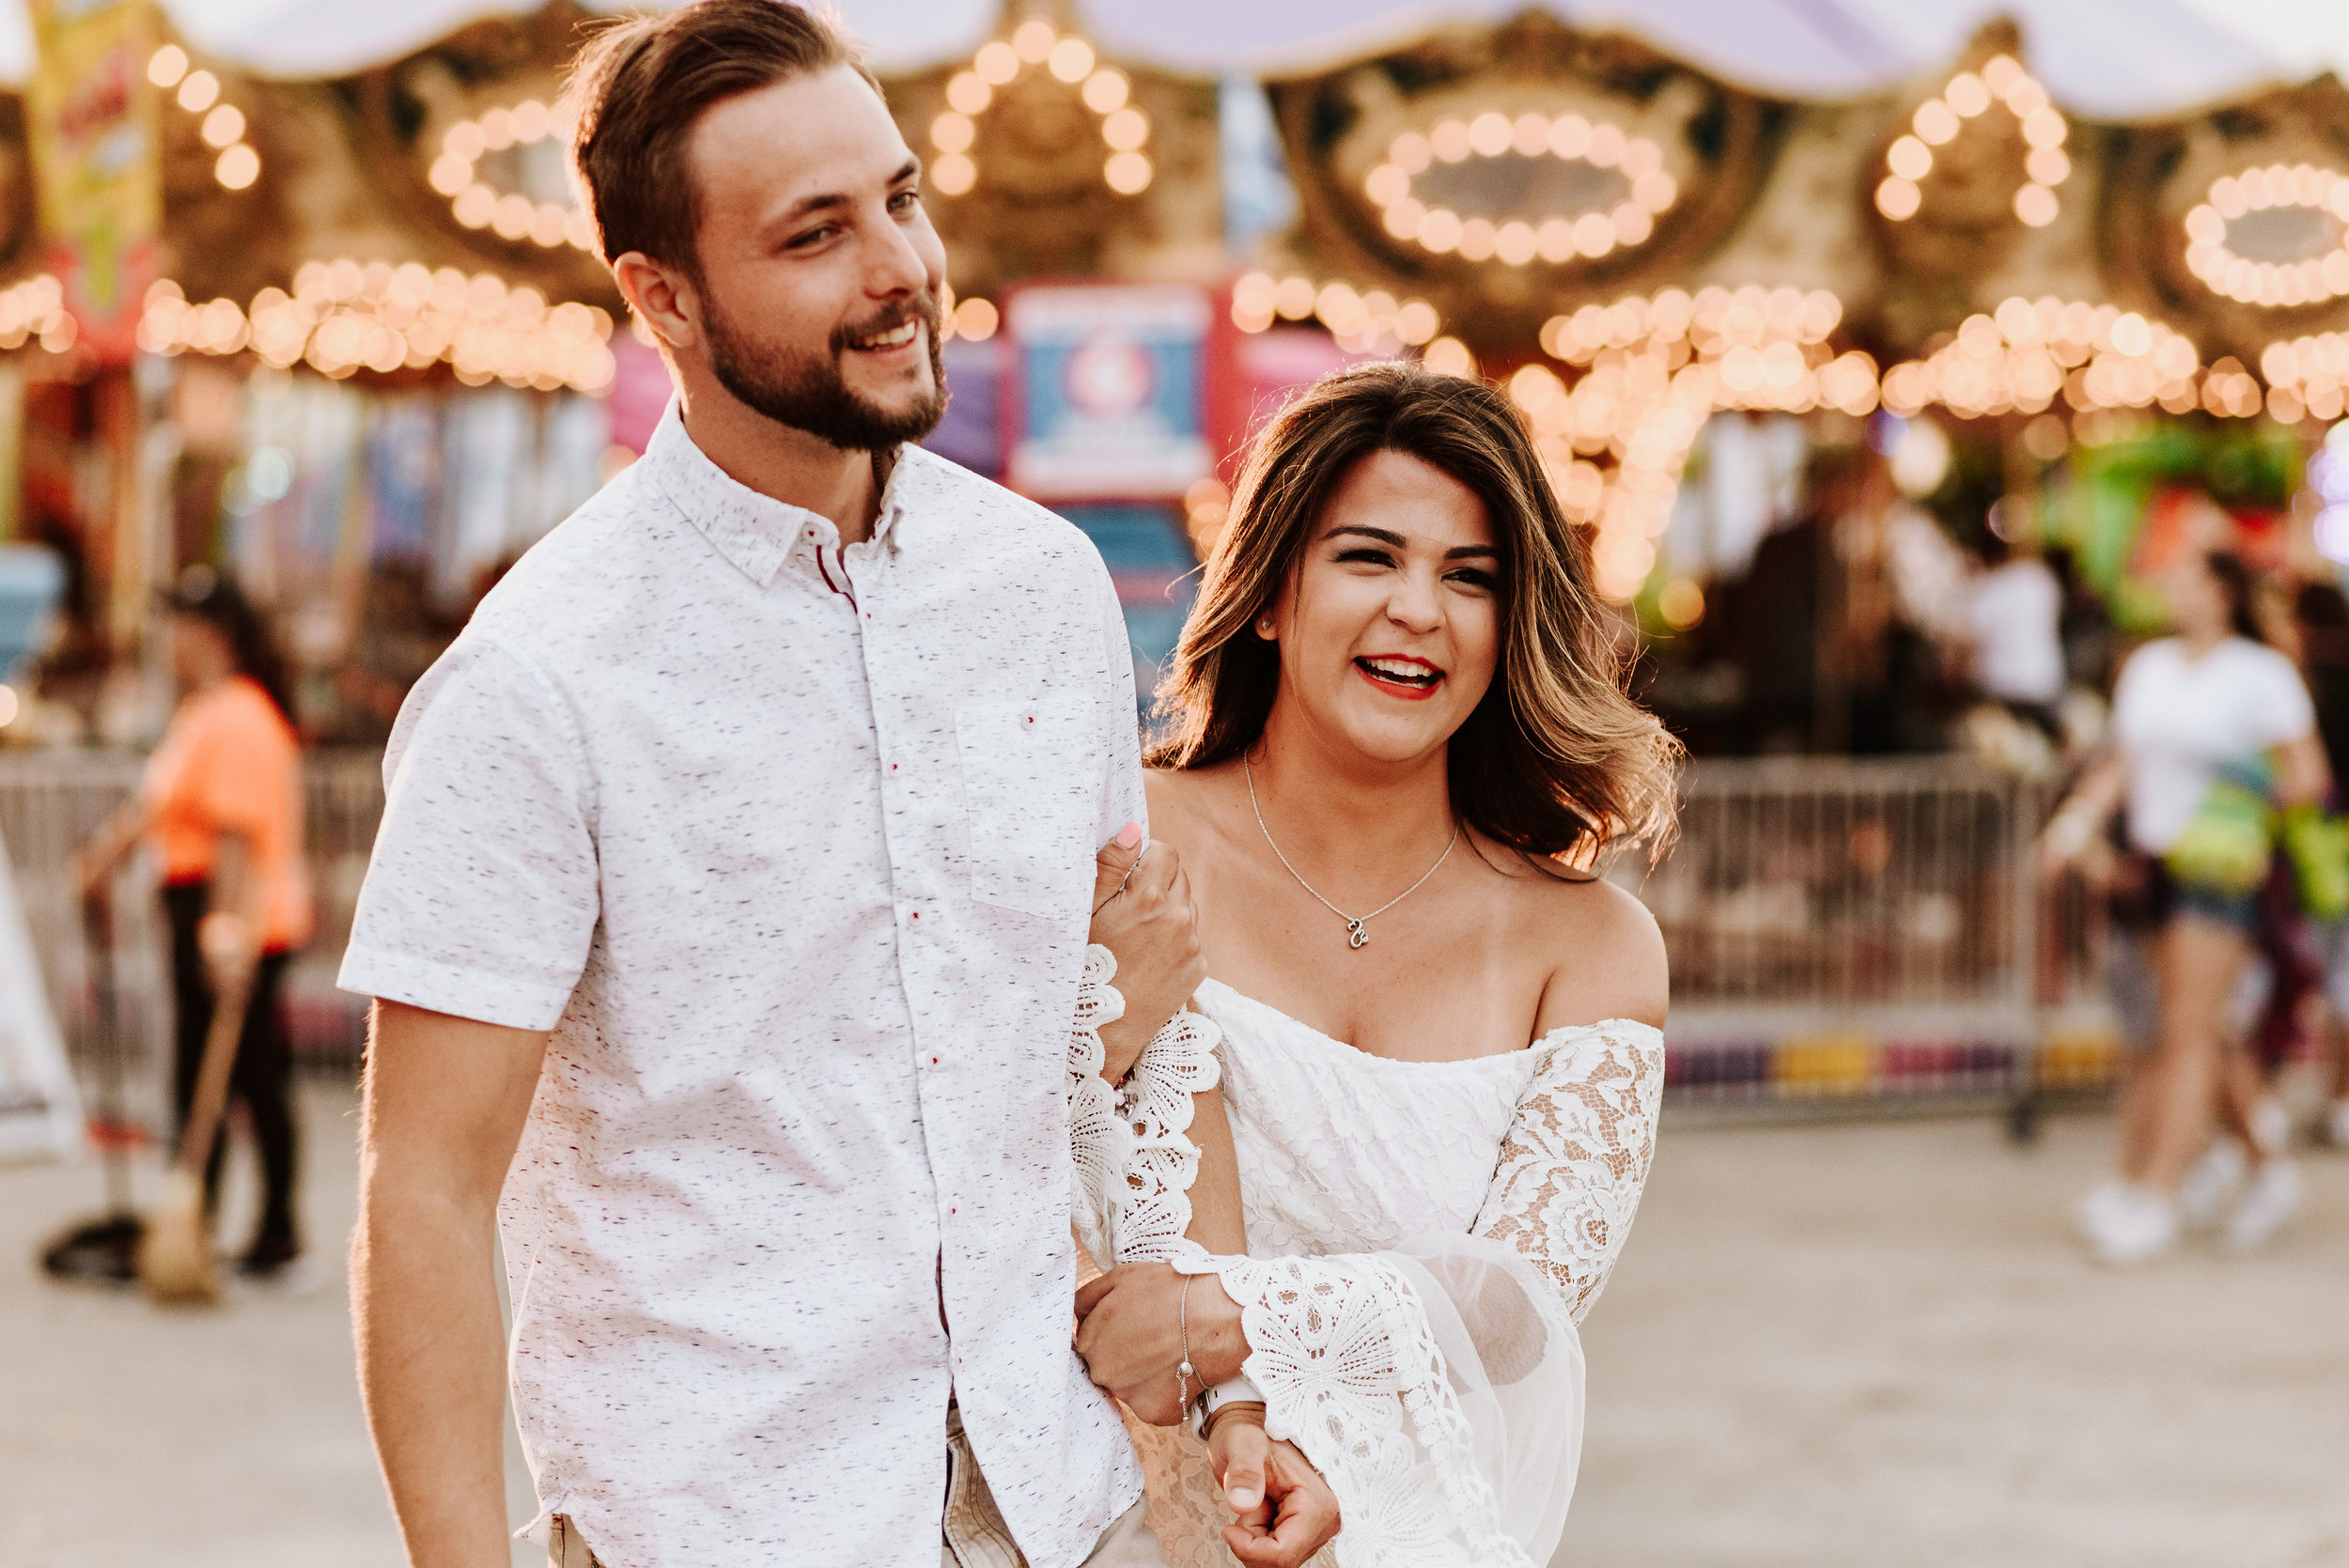 Ana_Justin_Engagement_Session_Miami_Dade_Fair_Photography_by_V_7479.jpg